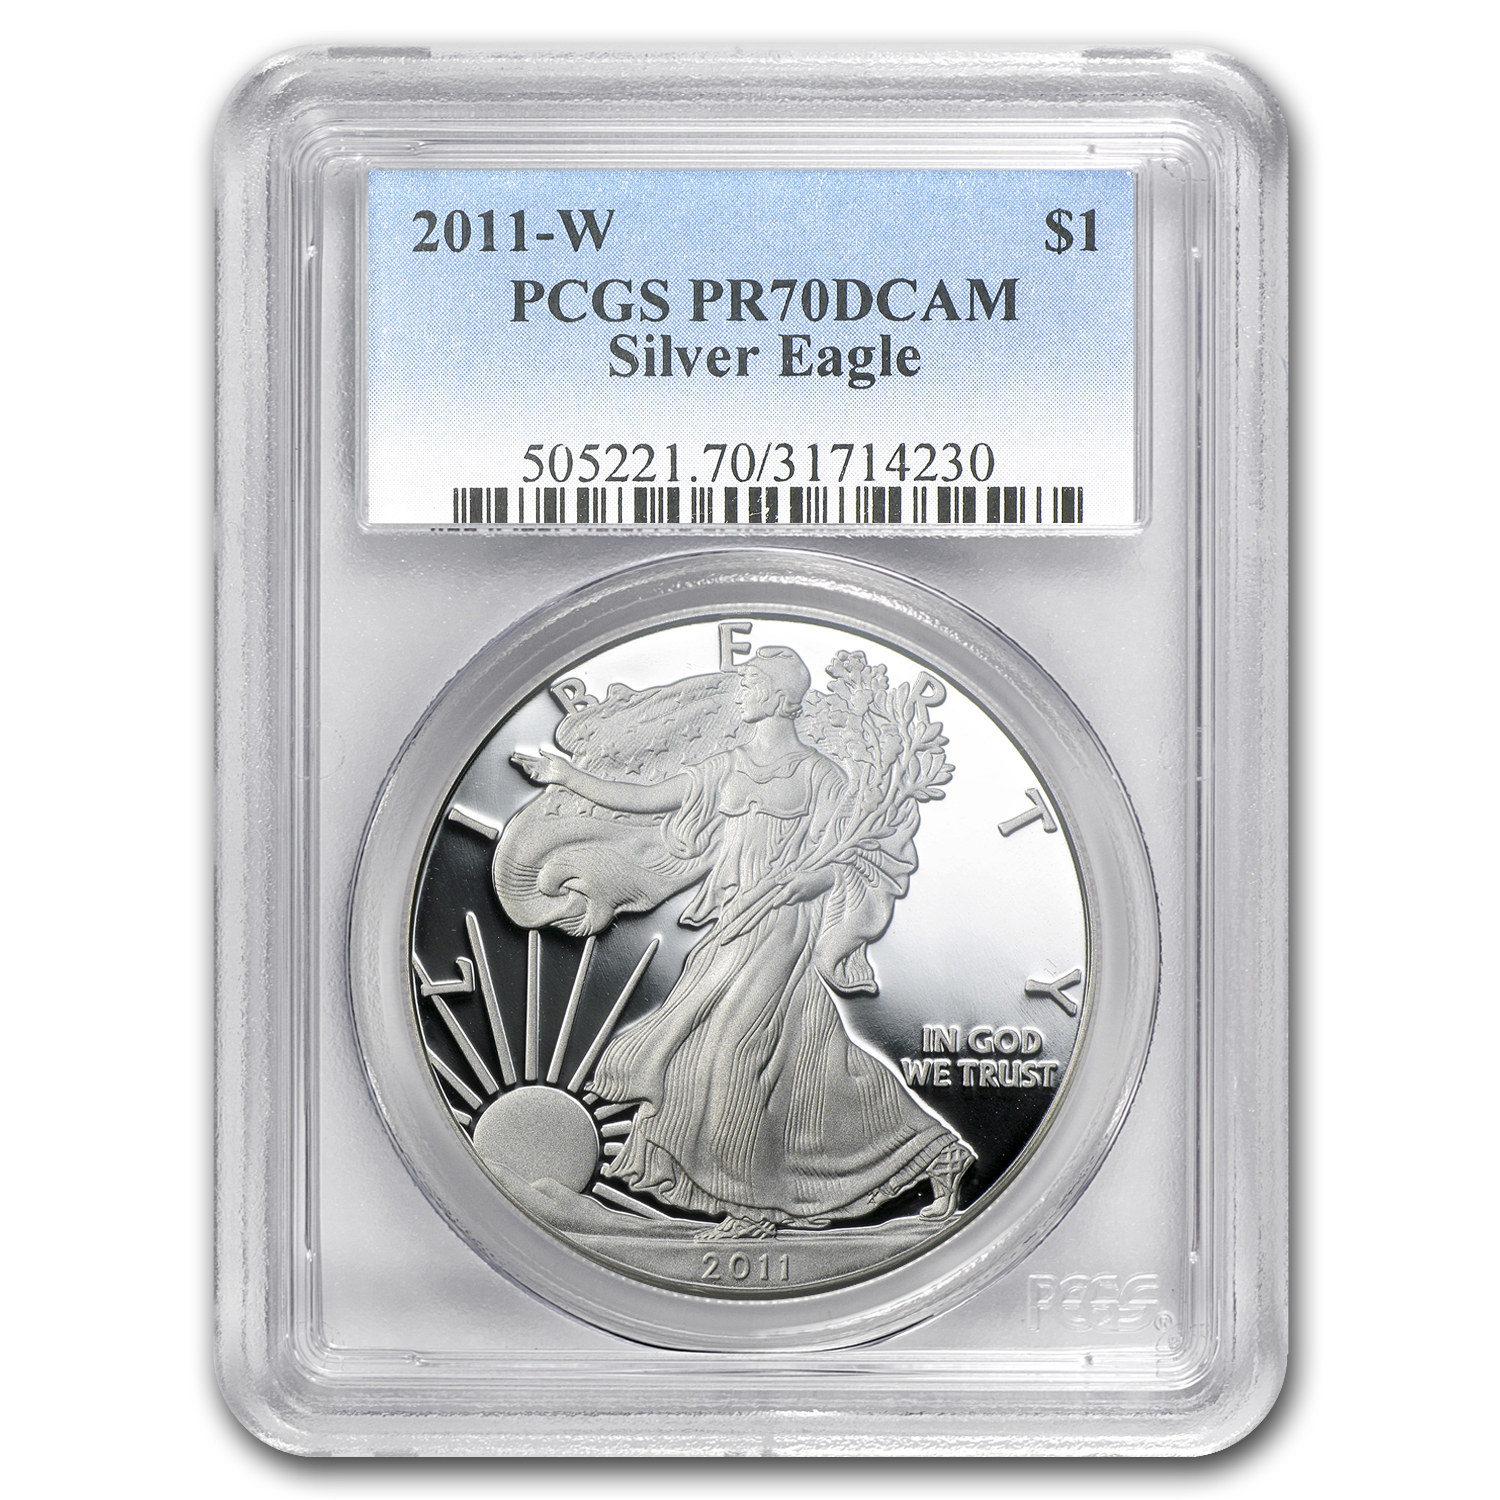 2011-W Proof Silver American Eagle PR-70 PCGS